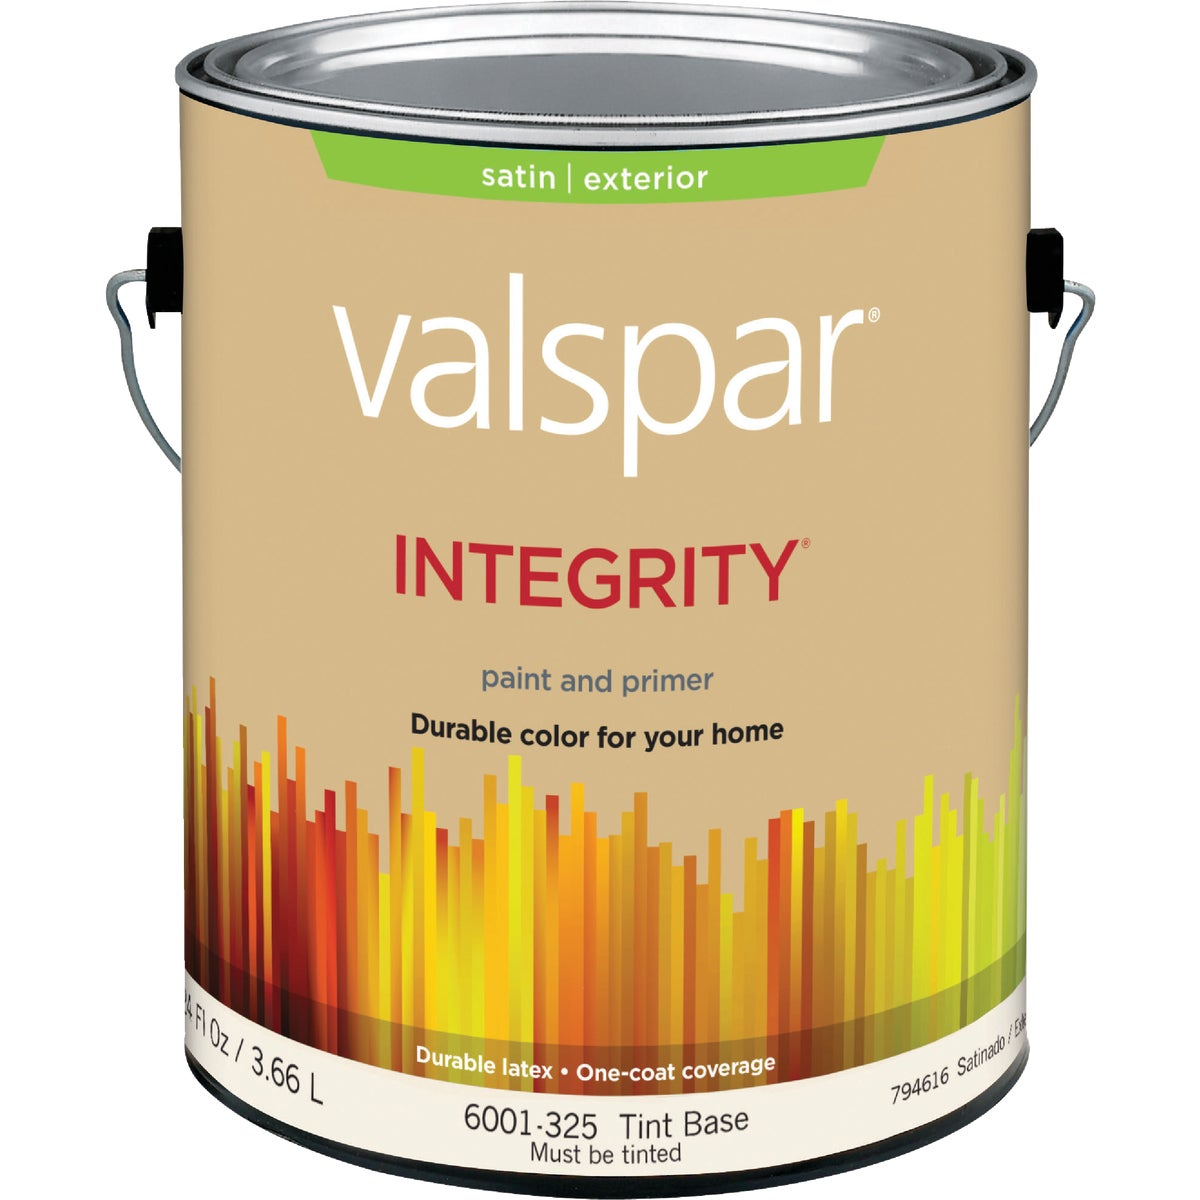 EXT SAT TINT BS PAINT - 004.6001325.007 by Valspar Corp